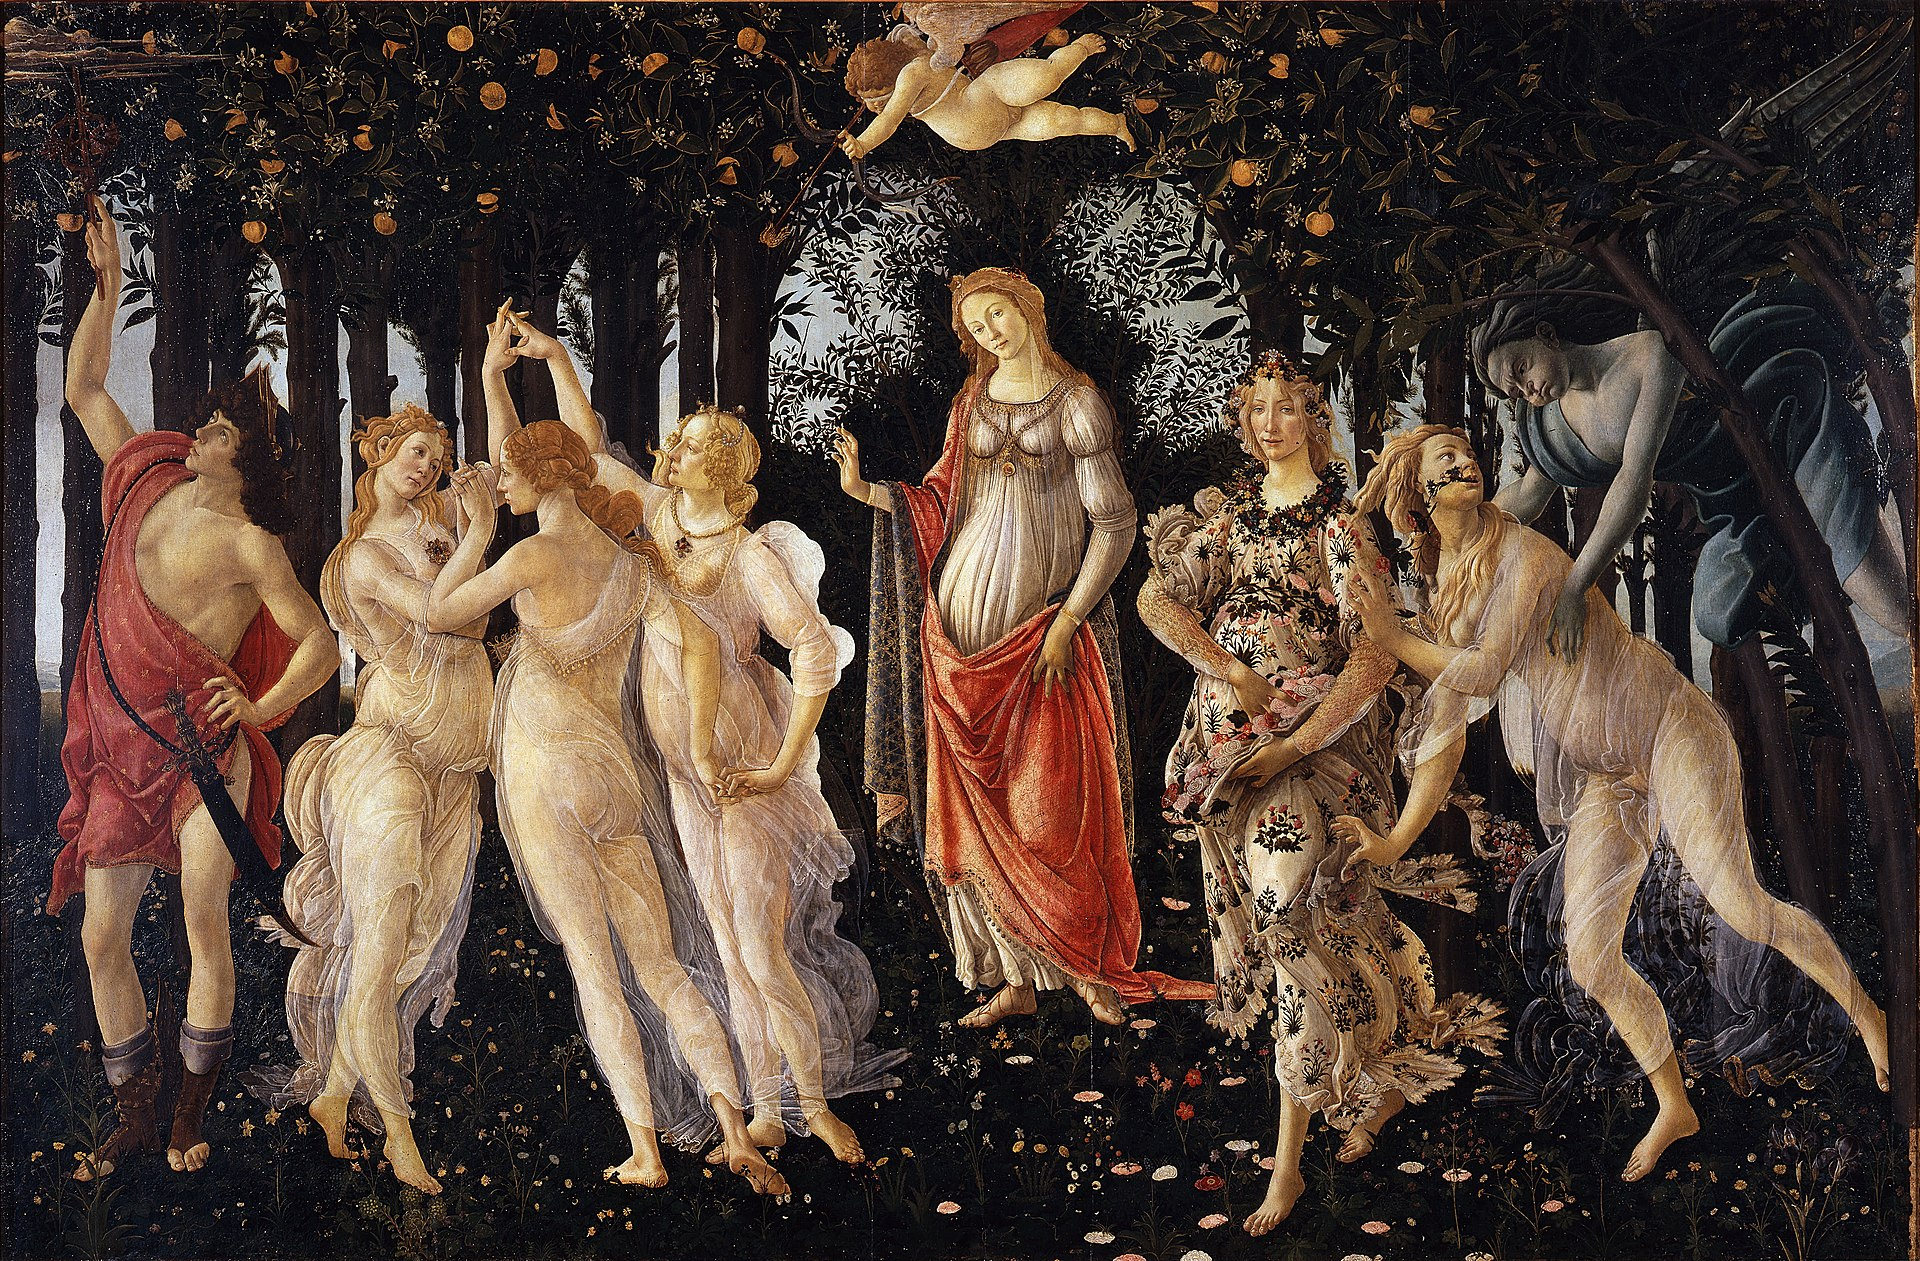 La Primavera (The Spring, by Sandro Botticelli)